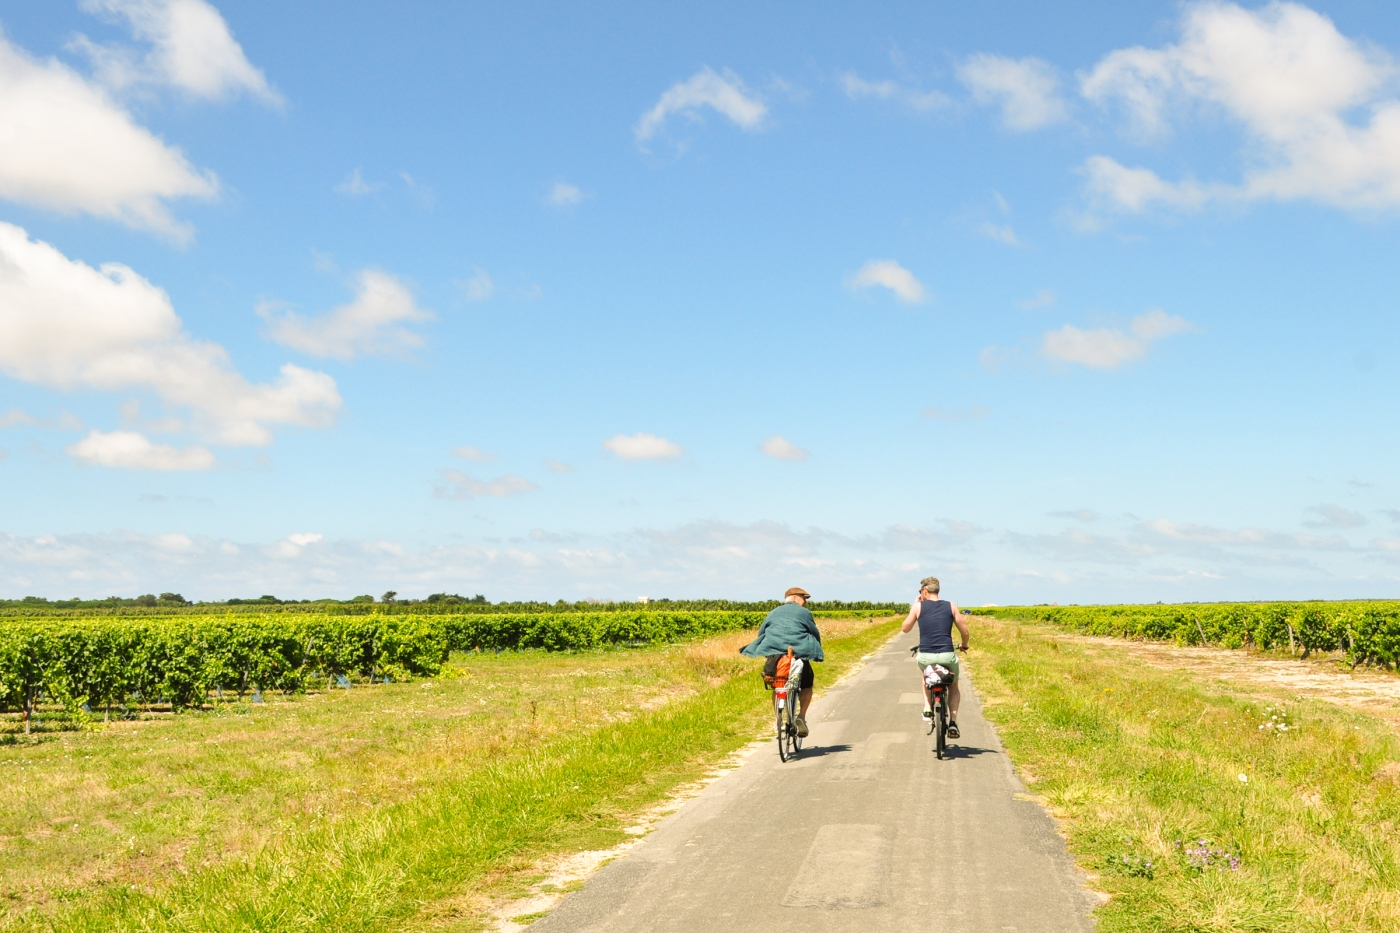 Two men cycling down a country road